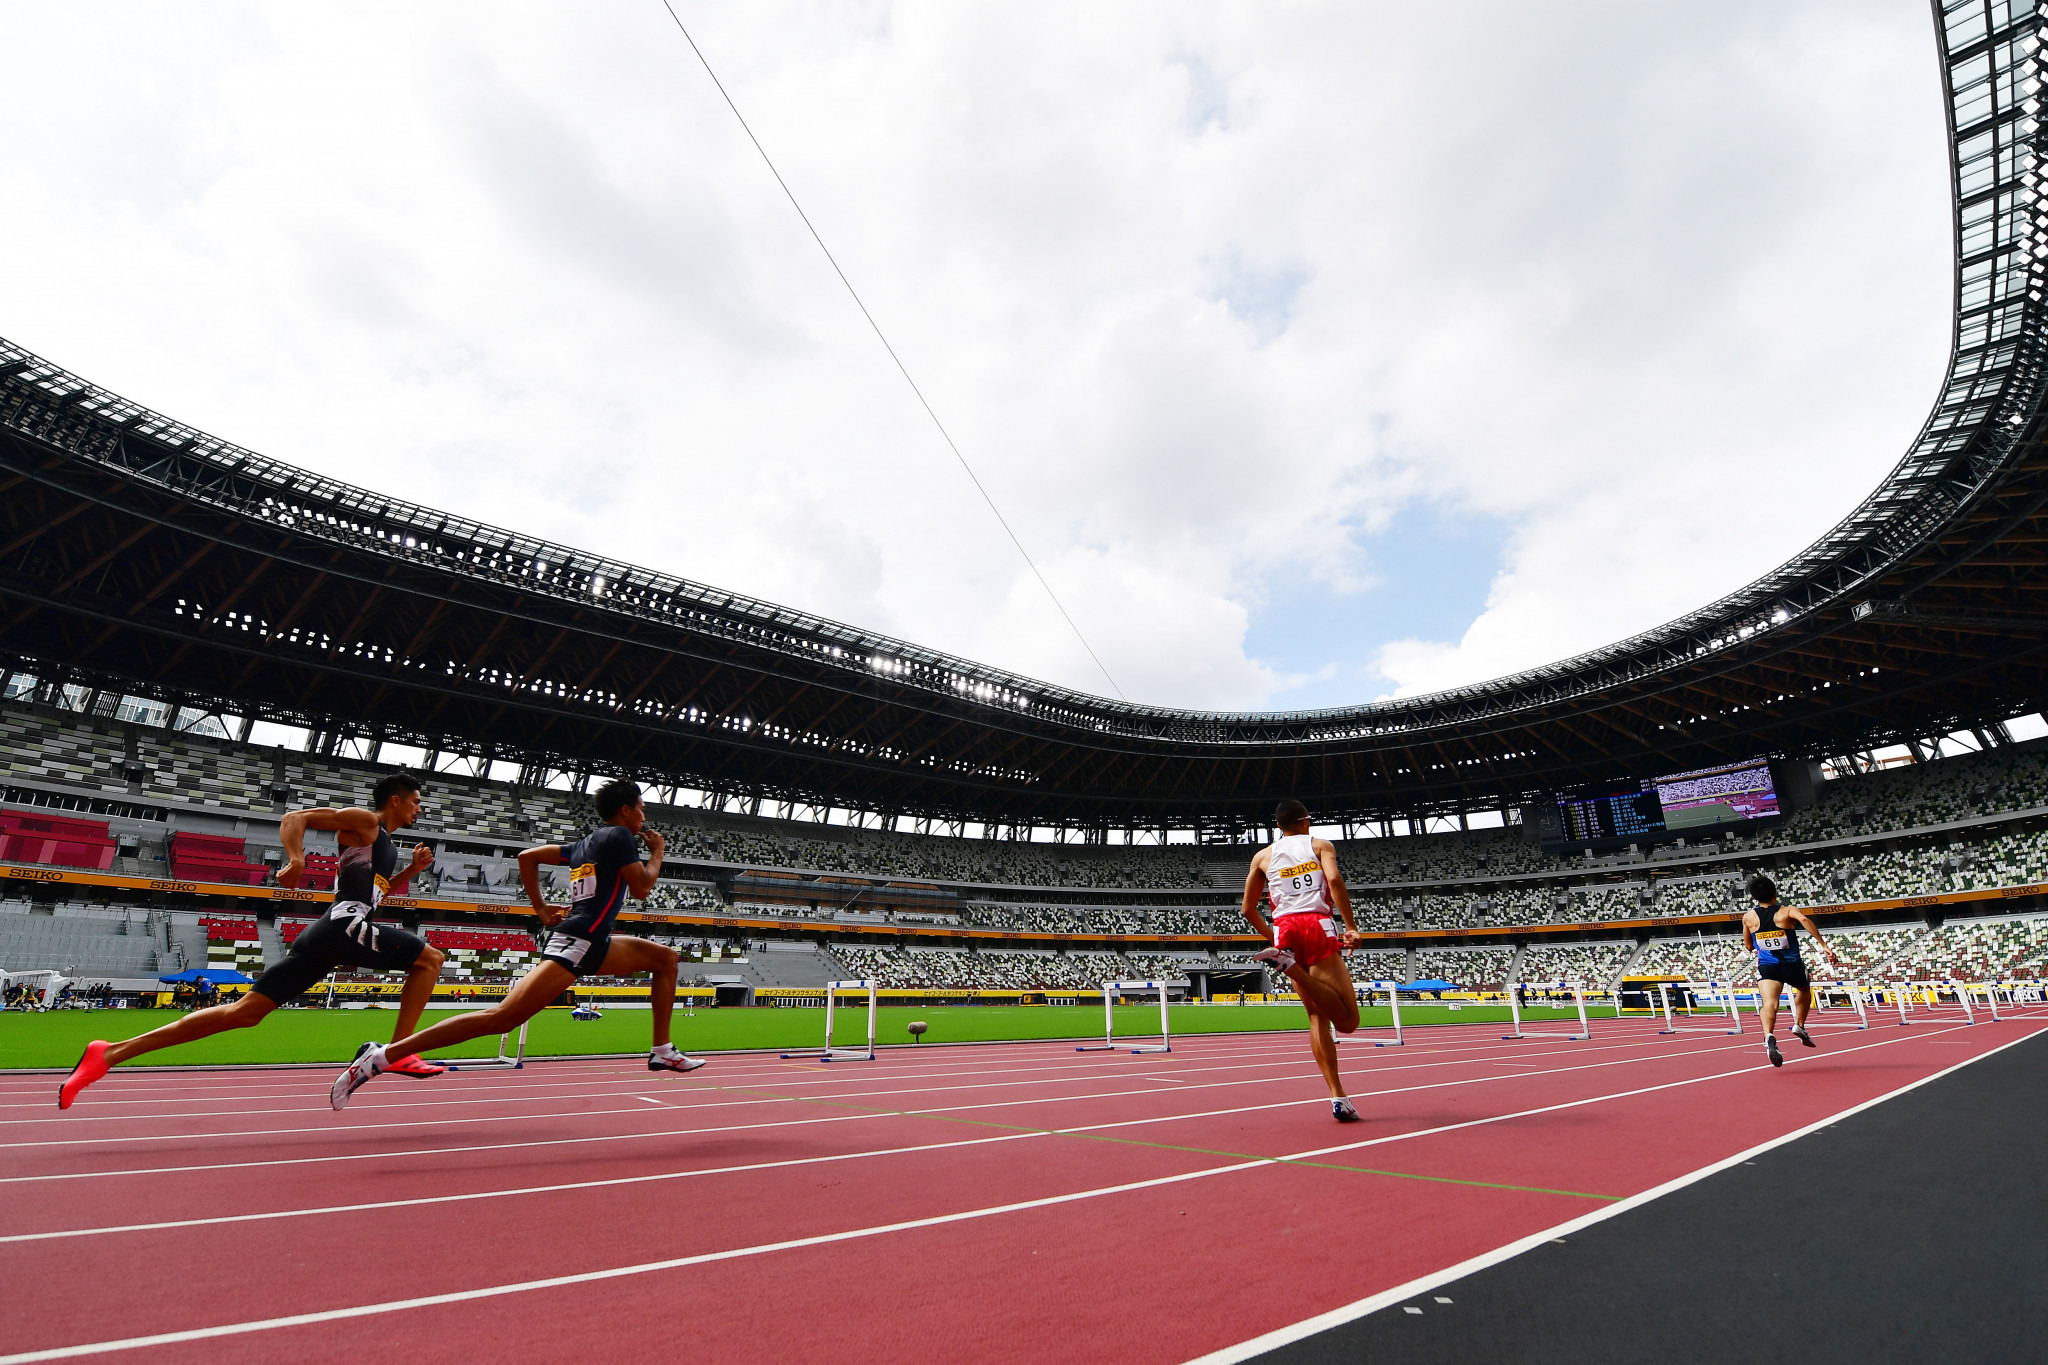 Tokyo's Olympic Stadium will host the opening World Athletics Continental Tour Gold meeting series on May 9 ©Getty Images